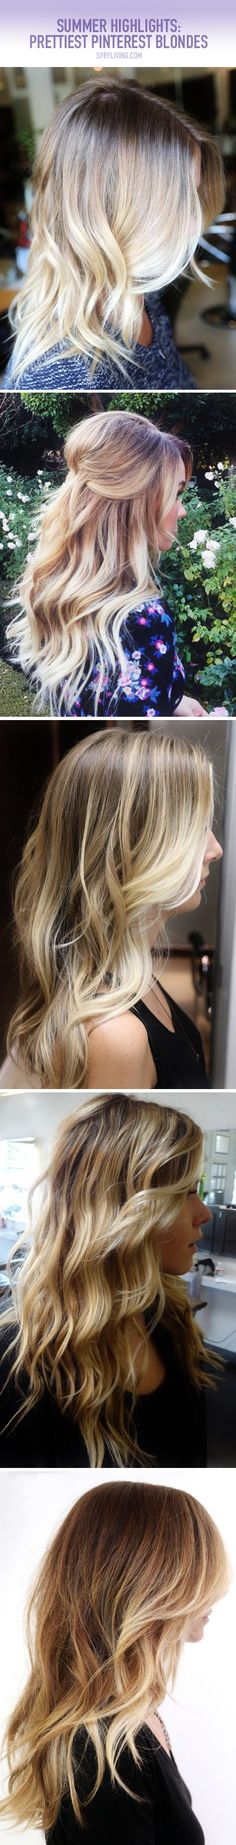 Moms - if you're thinking of highlighting your hair, go the #sombre route. No root maintenance and a true time saver in the salon. | The 15 Prettiest Summer Highlights